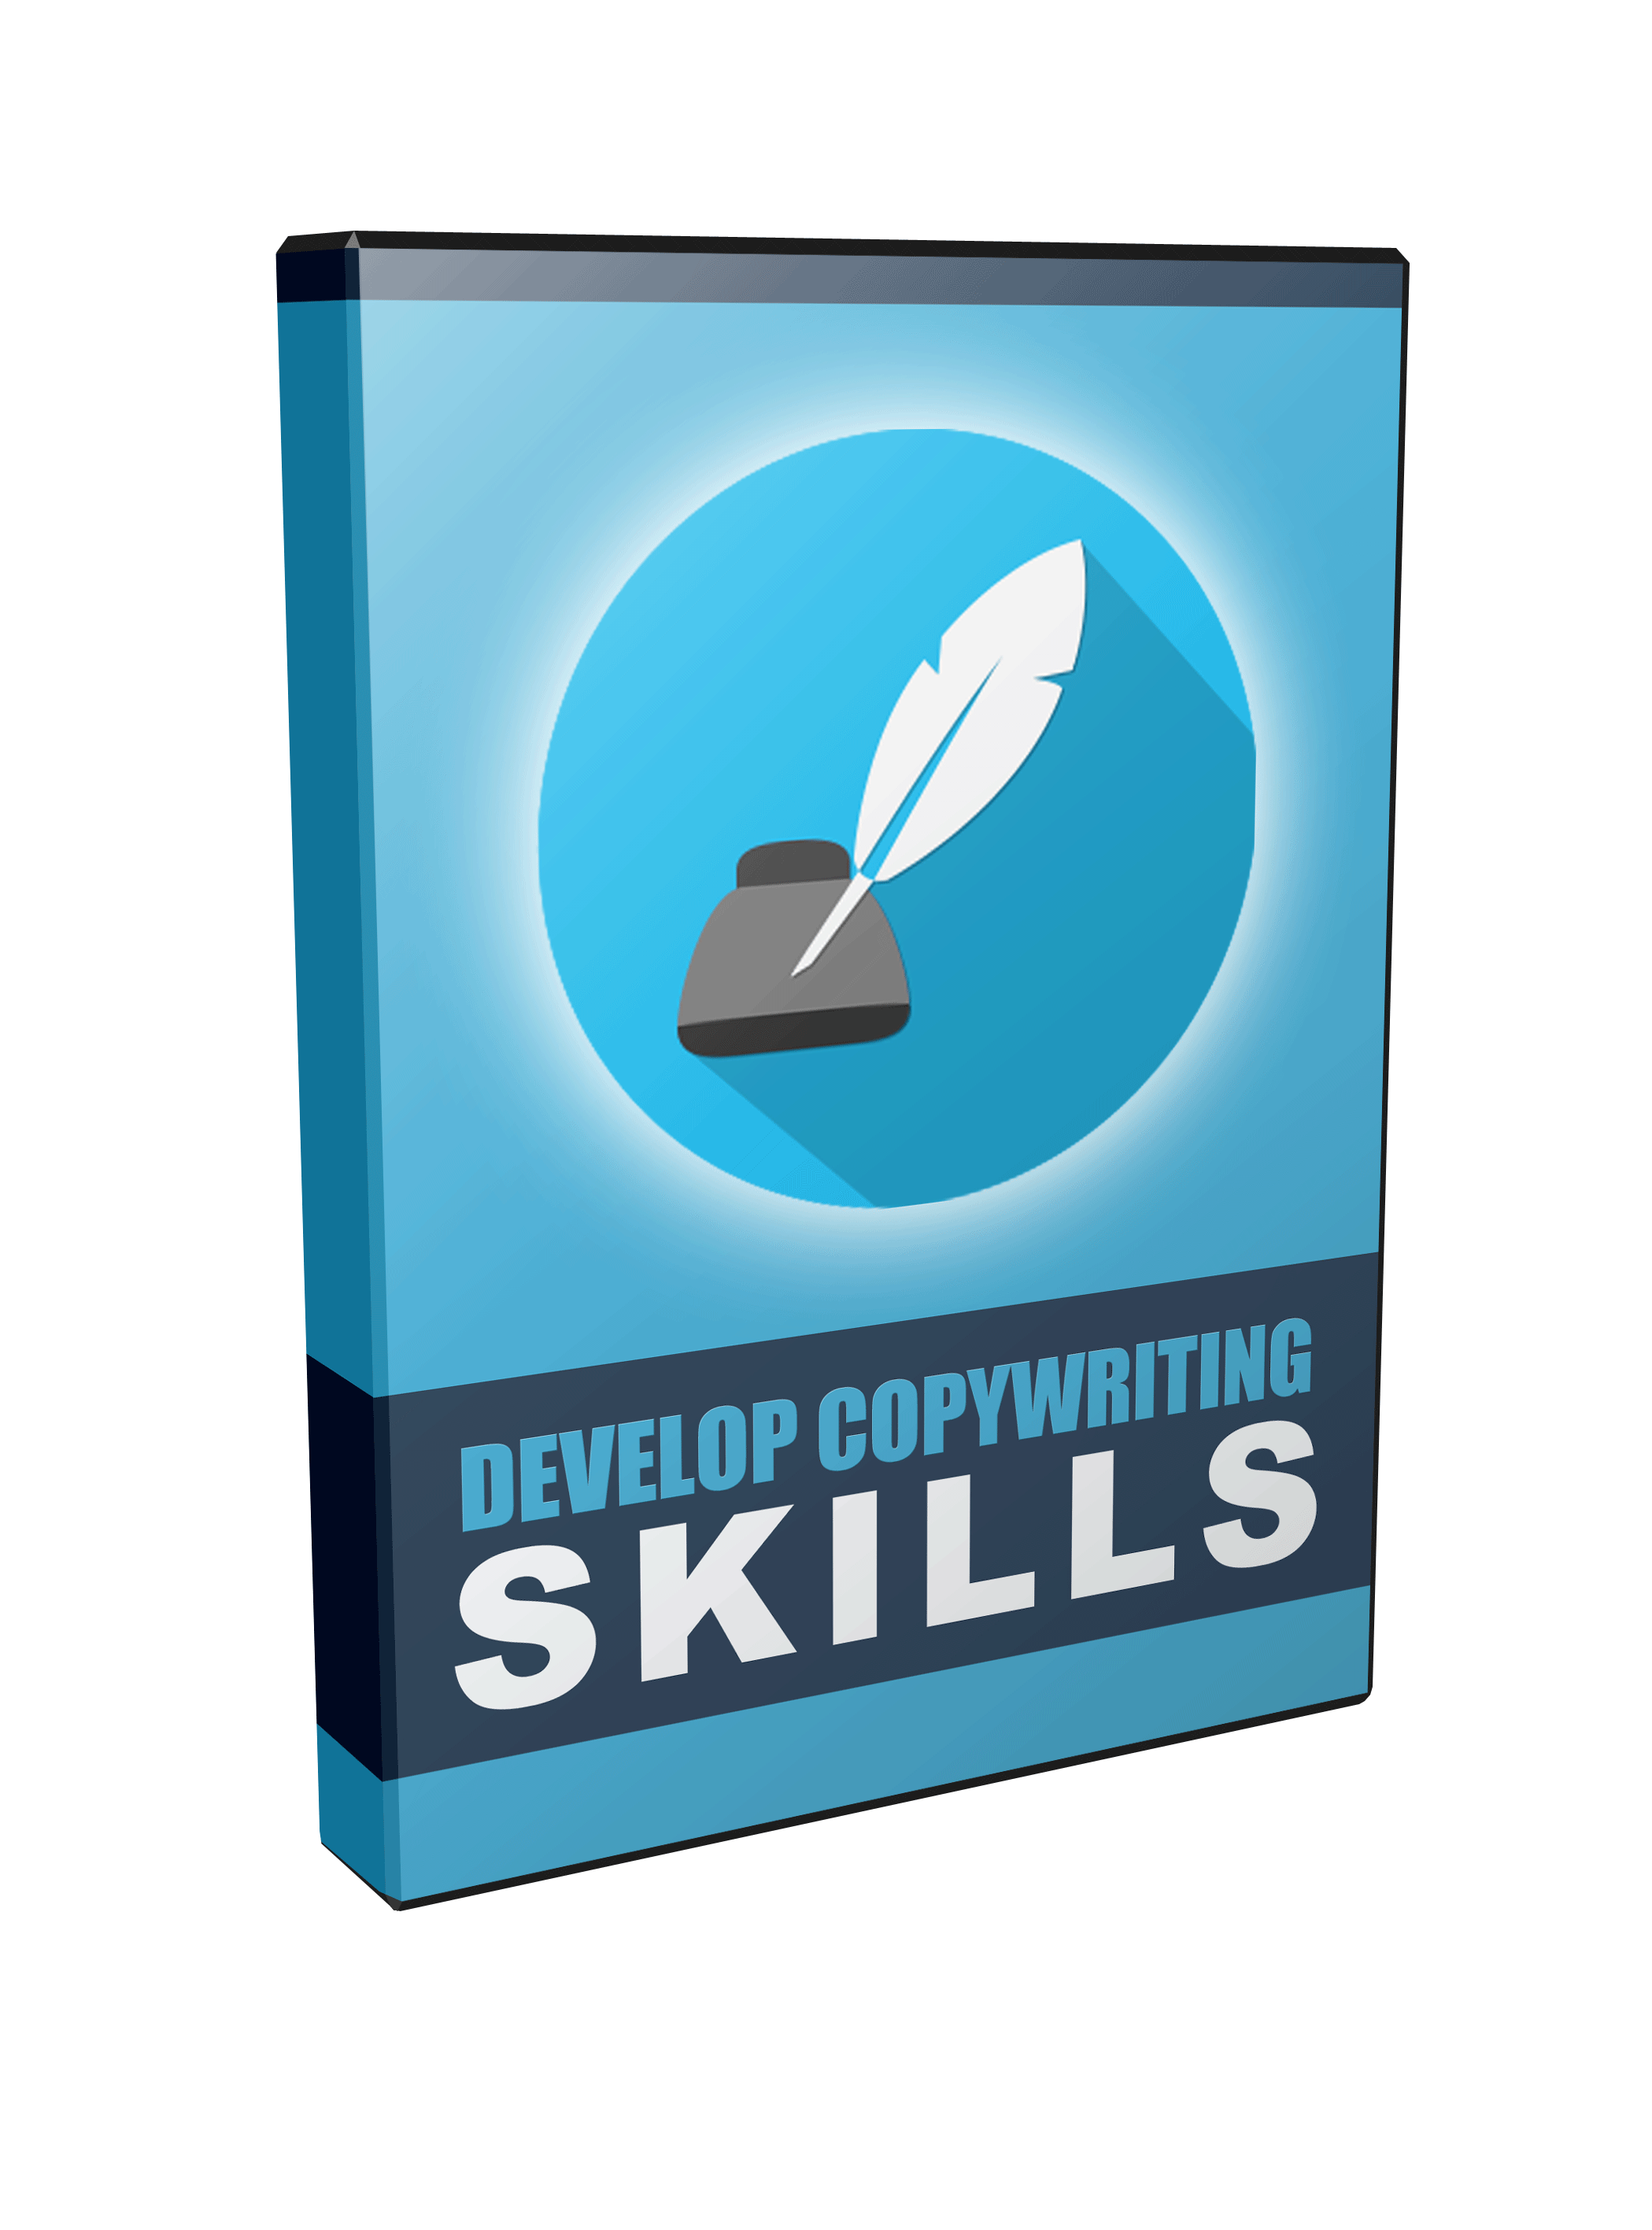 Develop-copywriting-skills-video